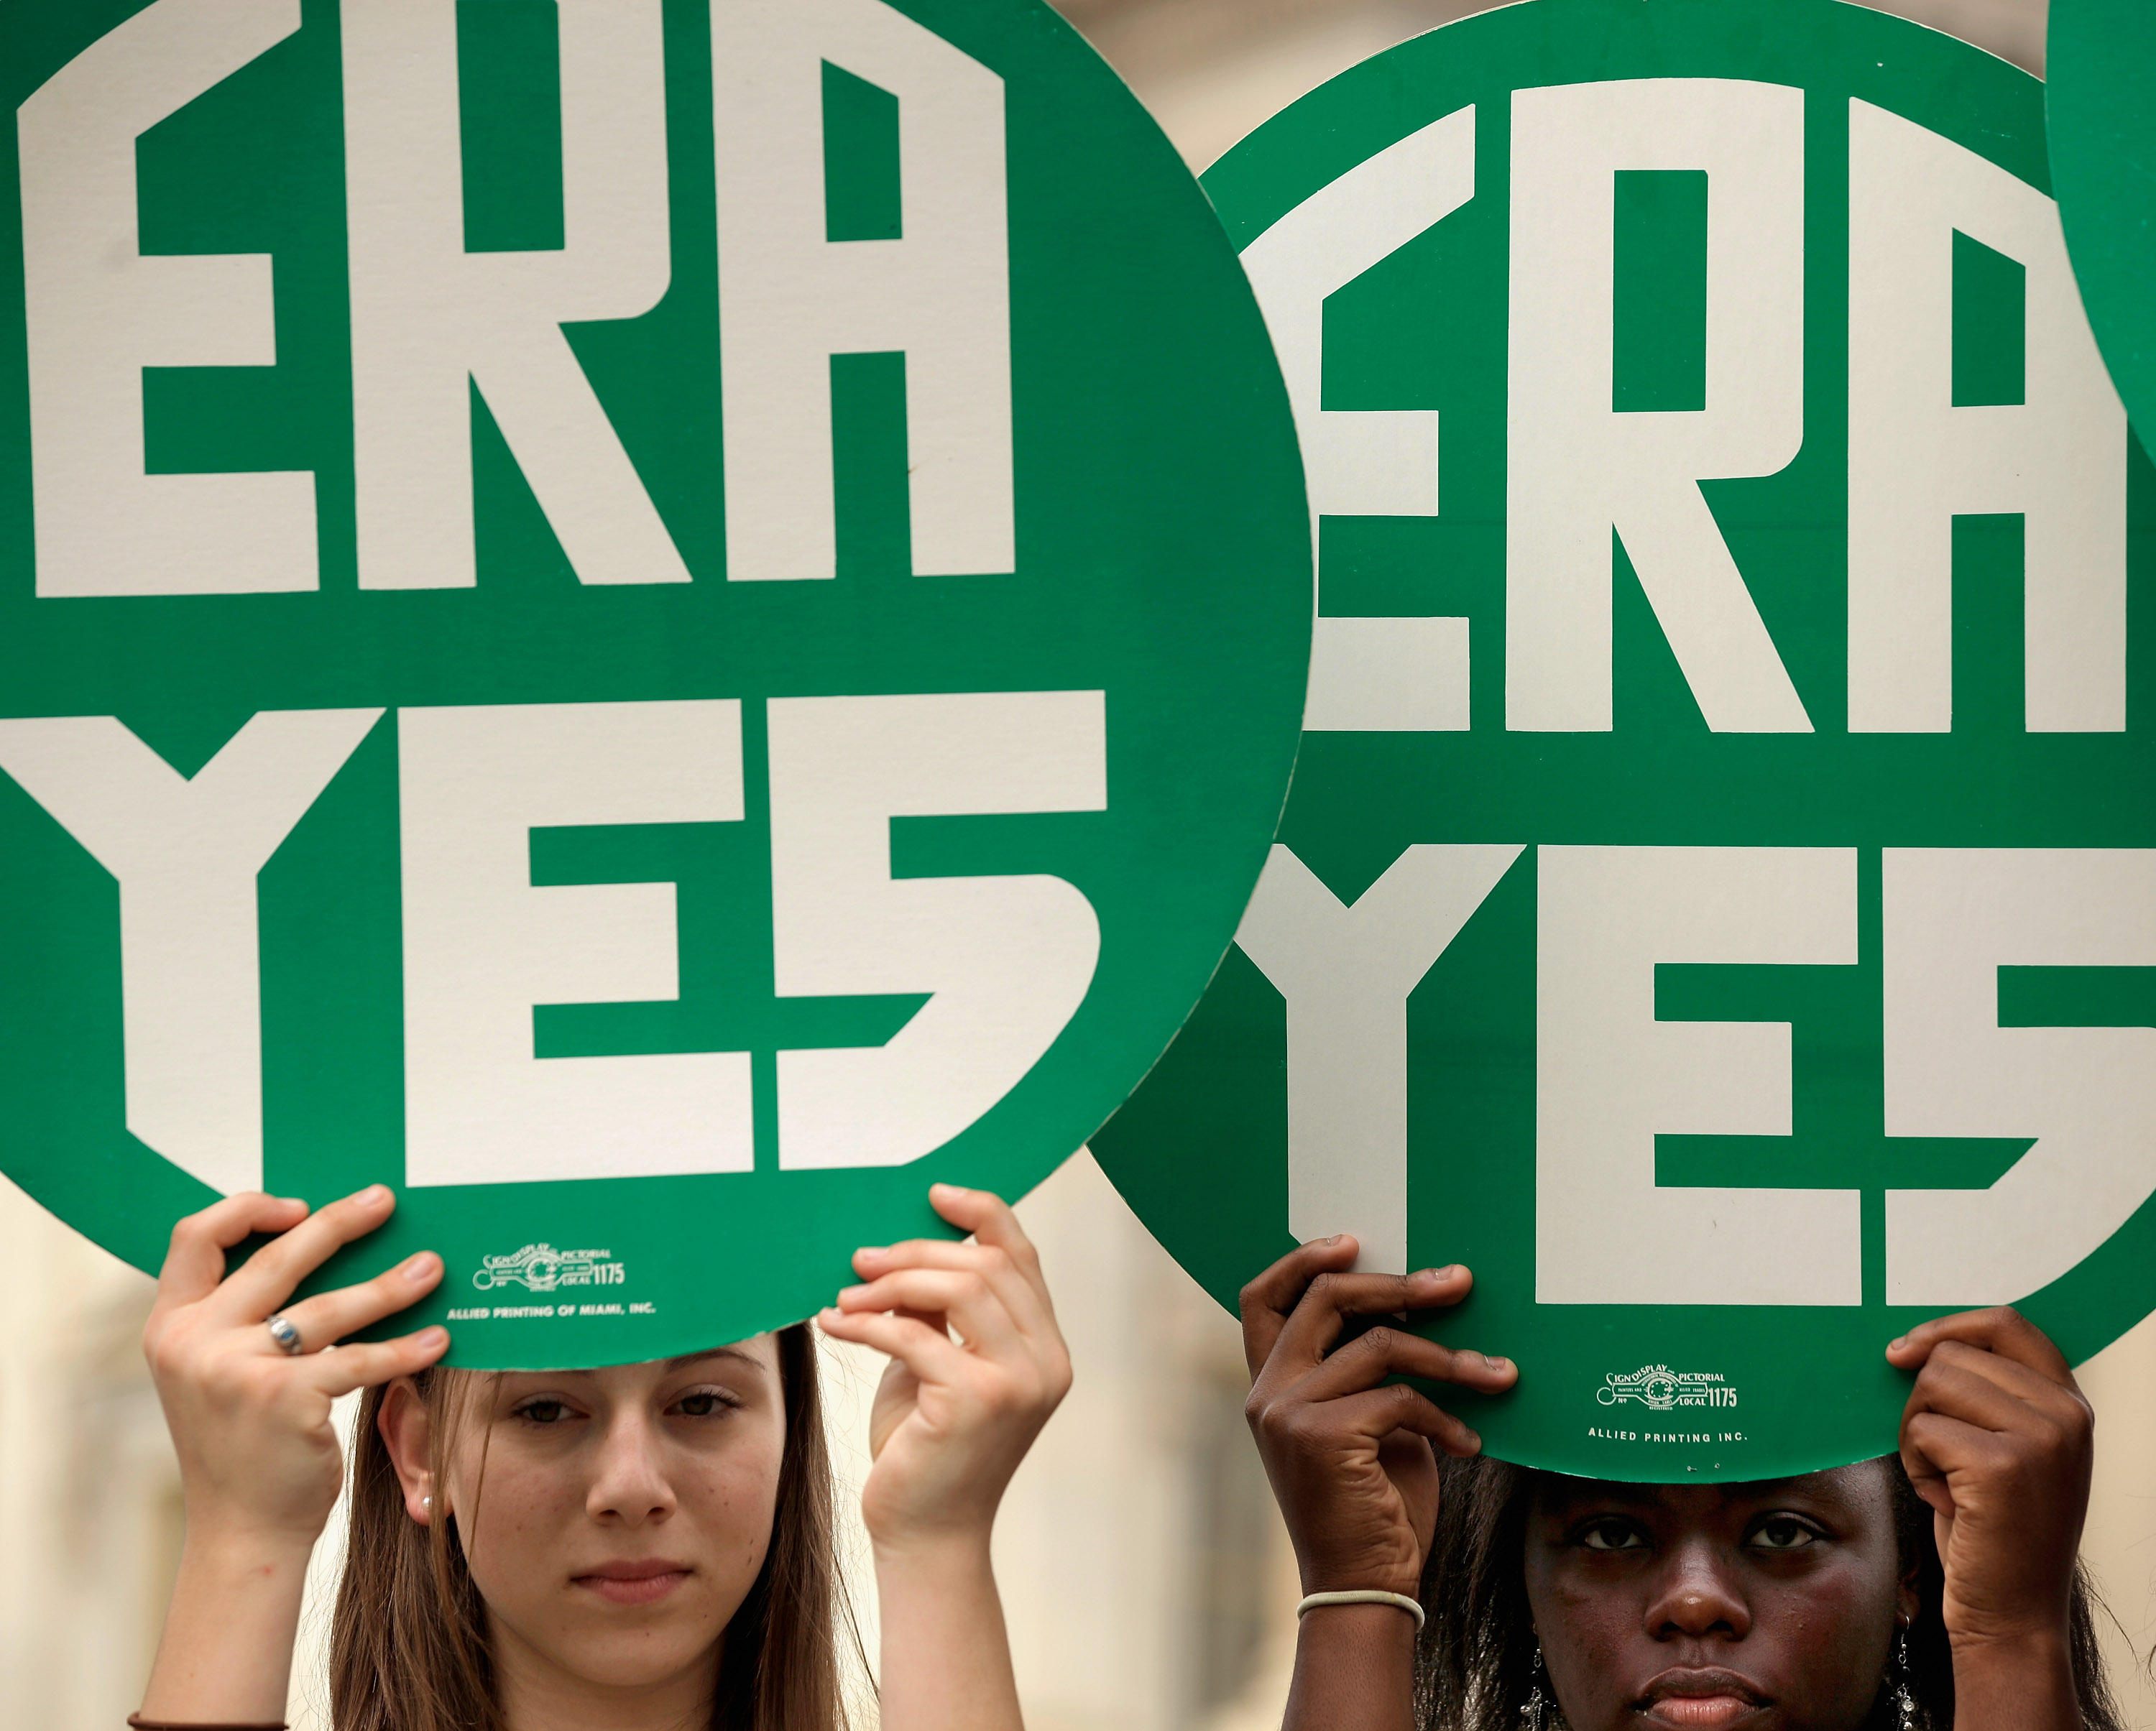 Virginia reaches long-awaited milestone by ratifying Equal Rights Amendment, but legal fight looms